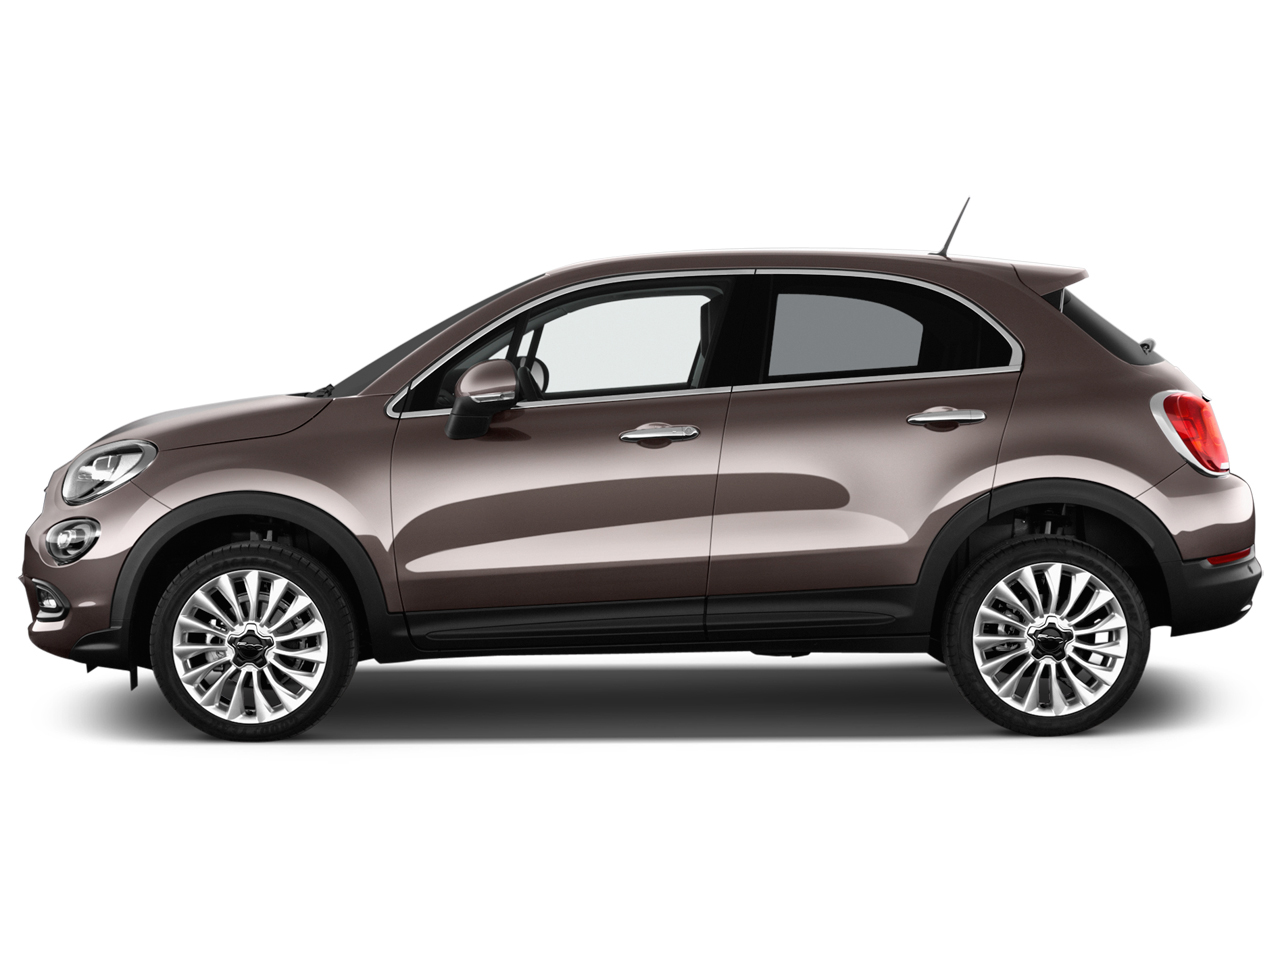 2018 fiat 500x prices in uae gulf specs reviews for dubai abu dhabi and sharjah yallamotor. Black Bedroom Furniture Sets. Home Design Ideas